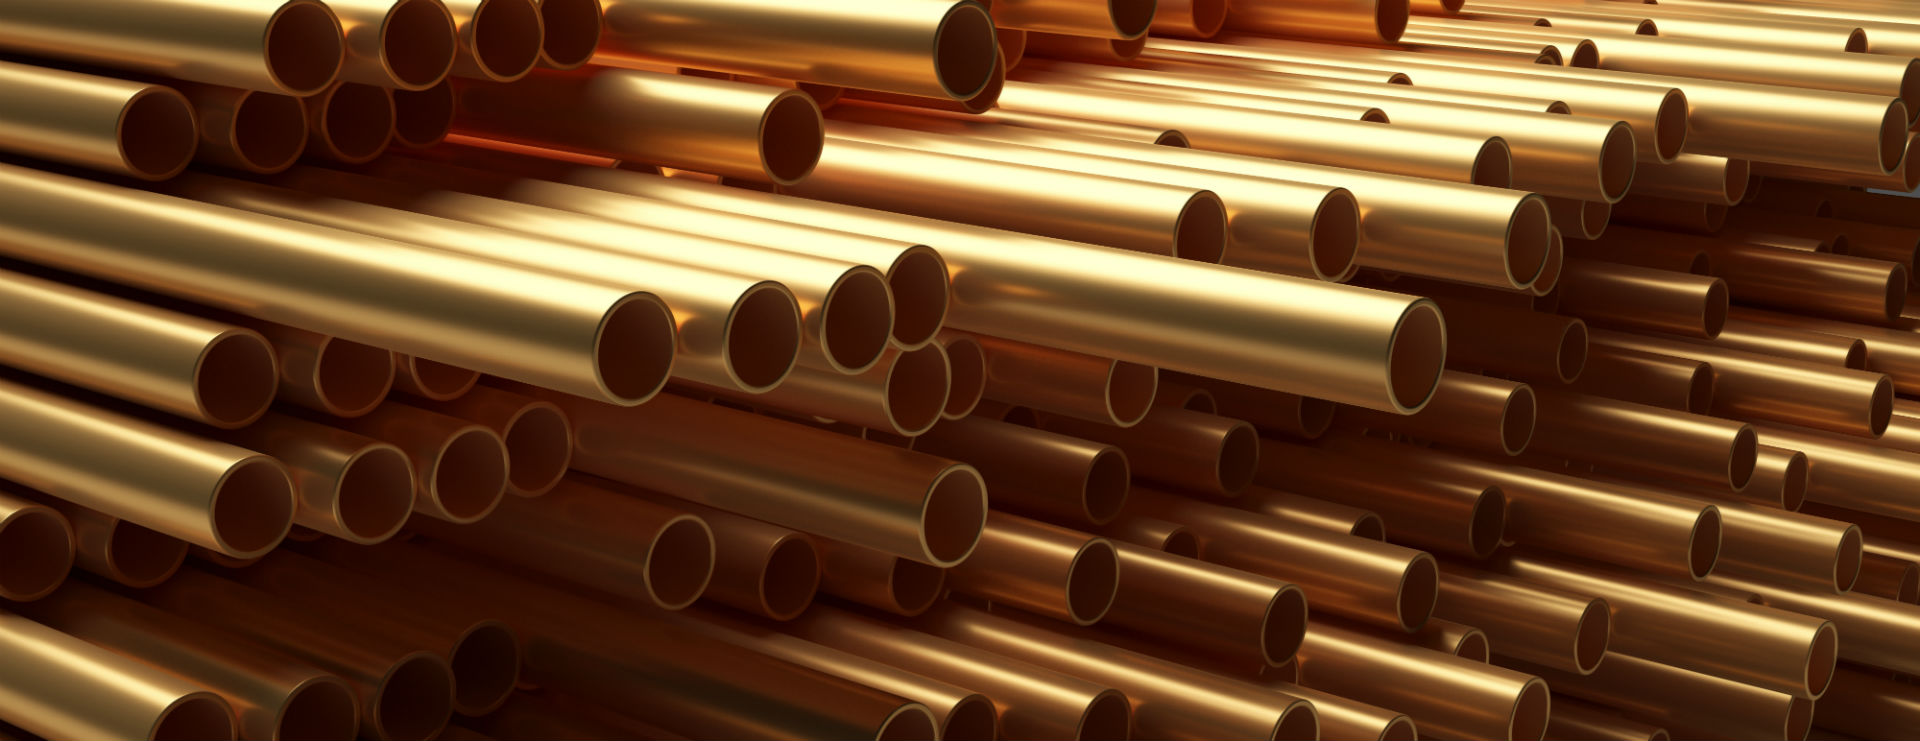 pipe tubes copper